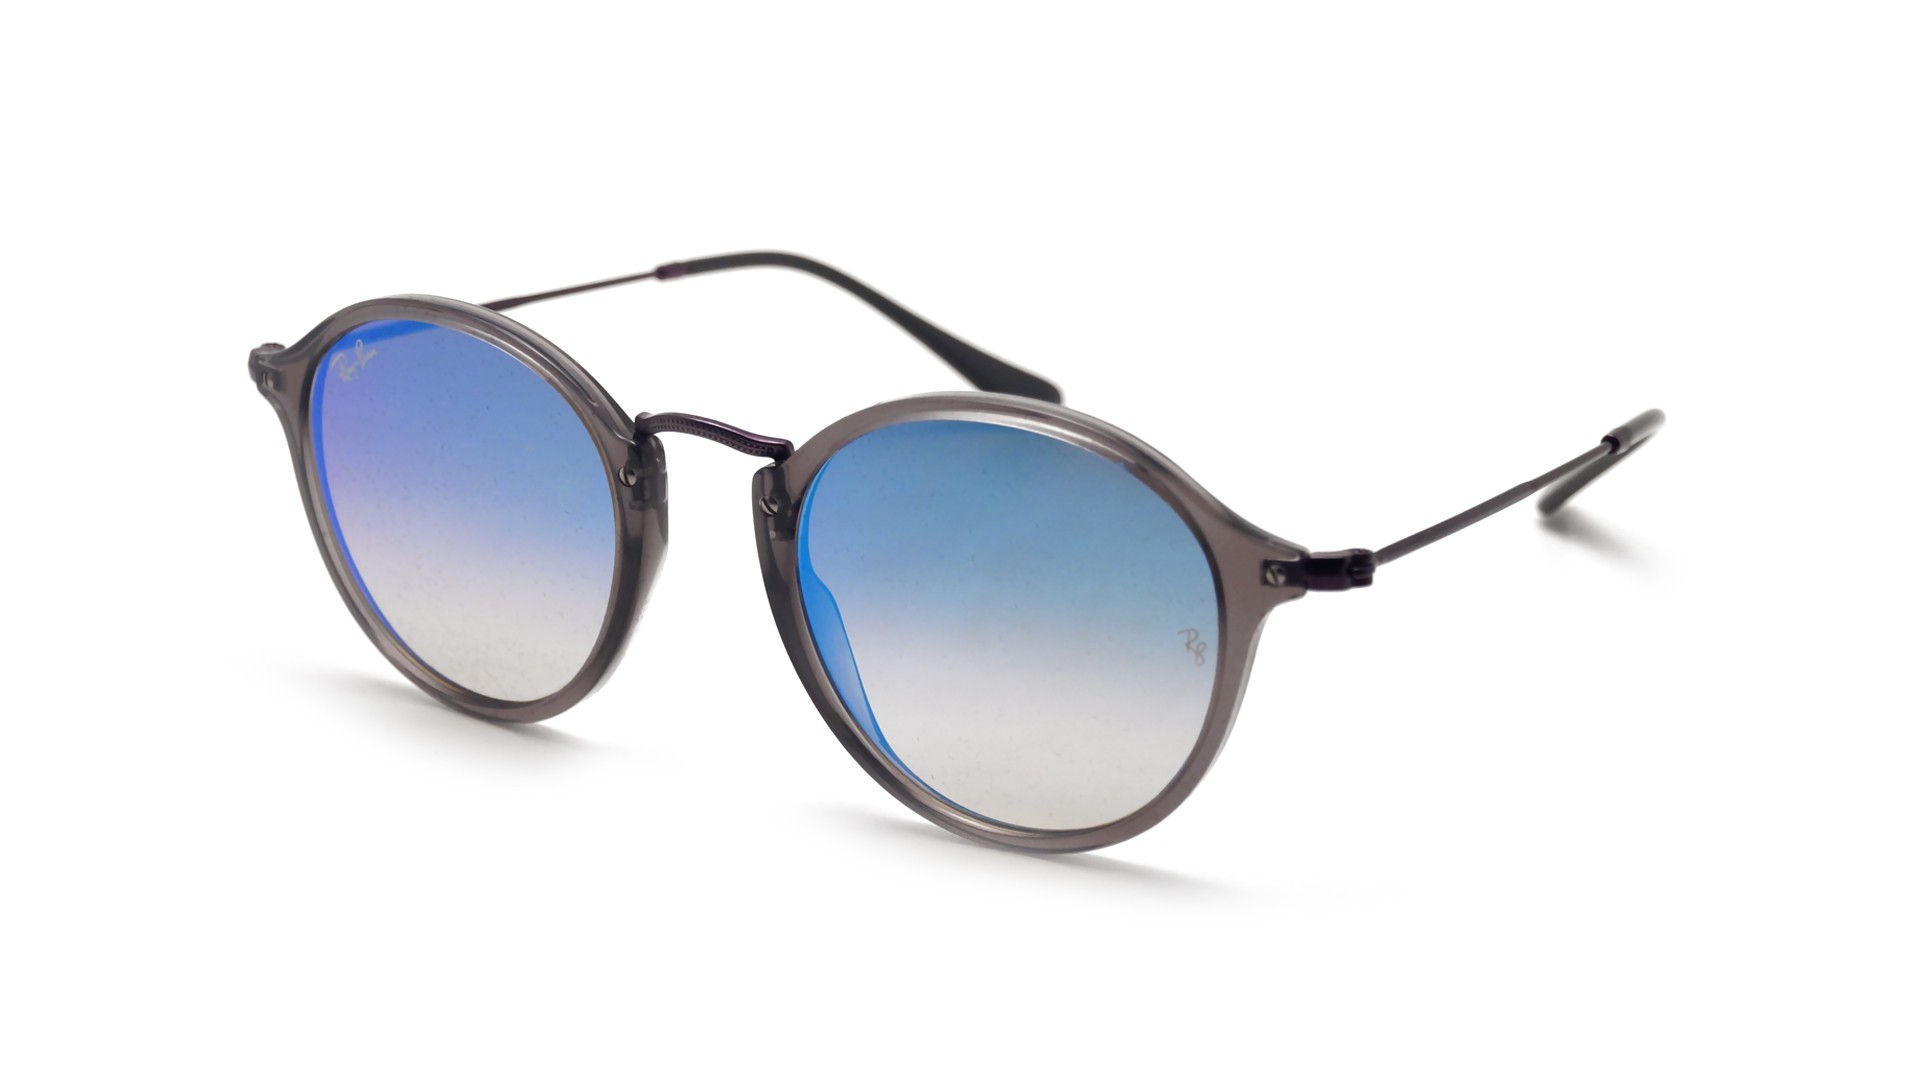 ray ban new collection  ray ban round fleck flat lenses blue rb2447n 6255/4o 49 21 gradient